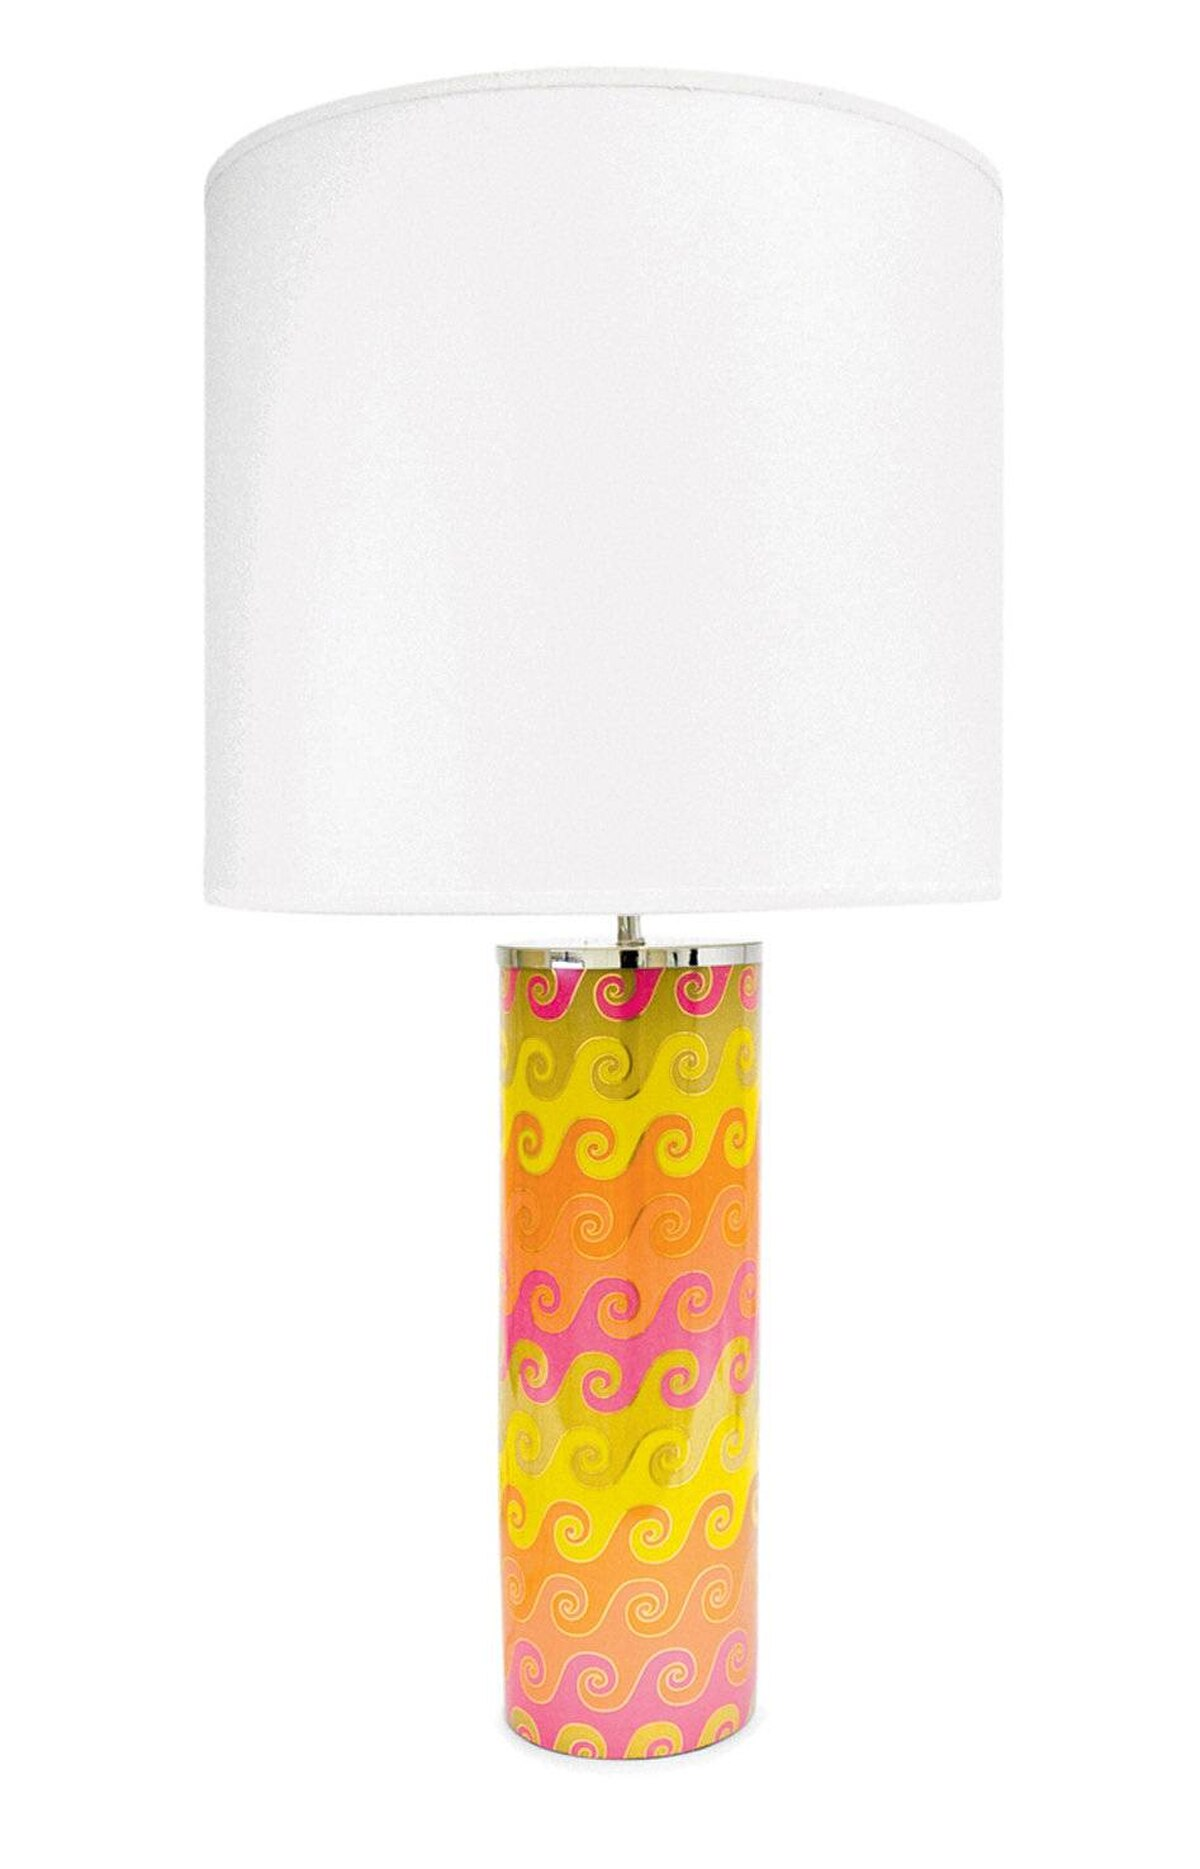 A single lamp in high-fired porcelain will add personality in spades to a bedside table or console. Jonathan Adler large Carnaby Waves lamp in Pink, $295 through www.jonathanadler.com.